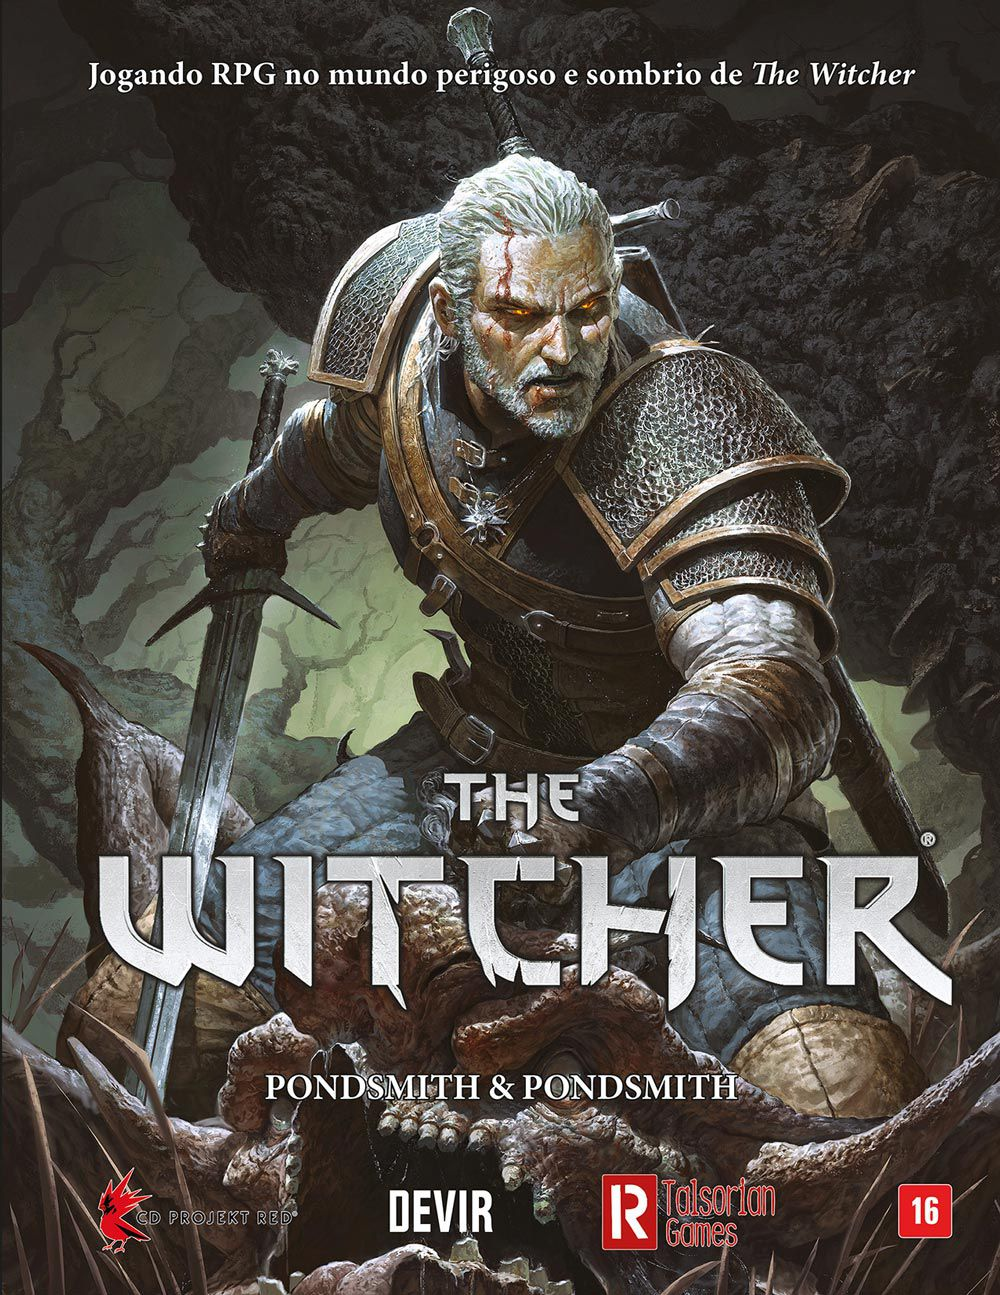 The Witcher: Role Playing Game